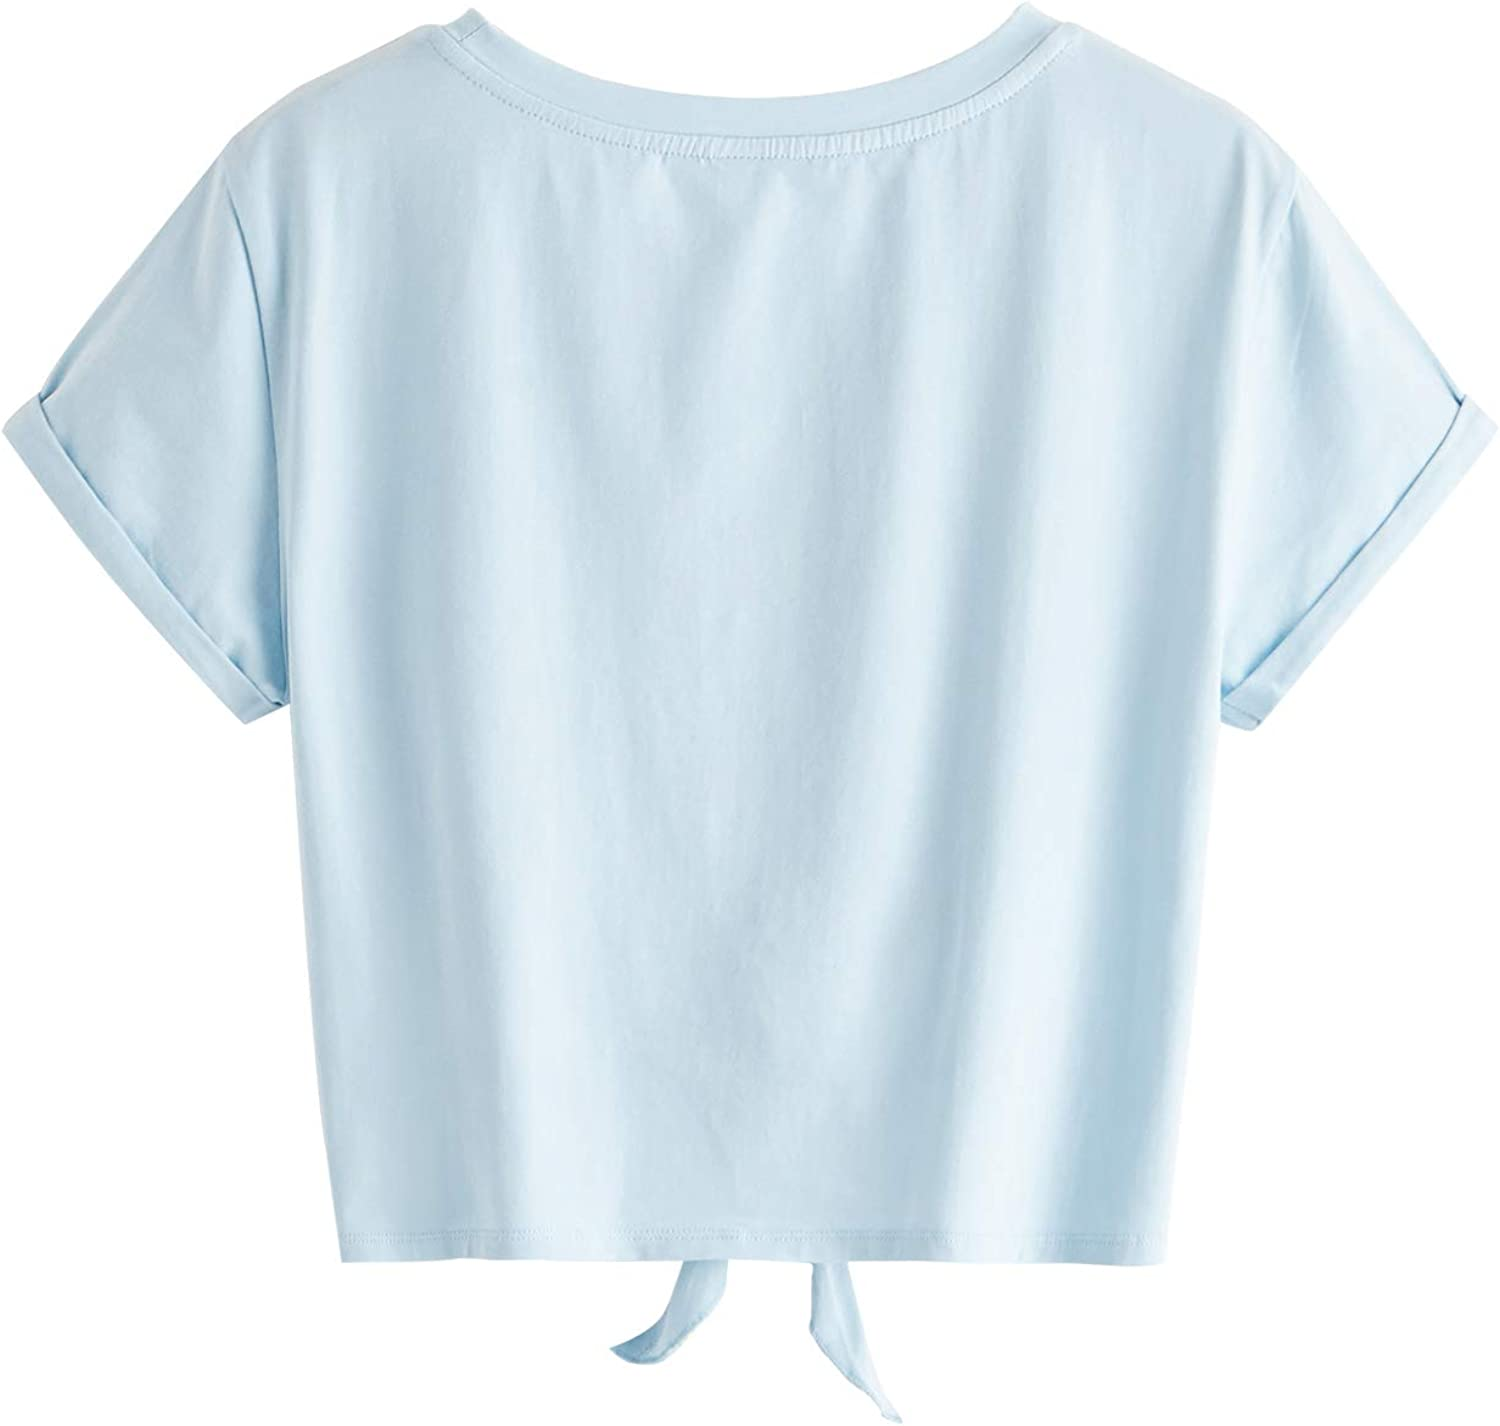 Romwe Womens Knot Front Cuffed Sleeve Striped Crop Top Tee T-Shirt